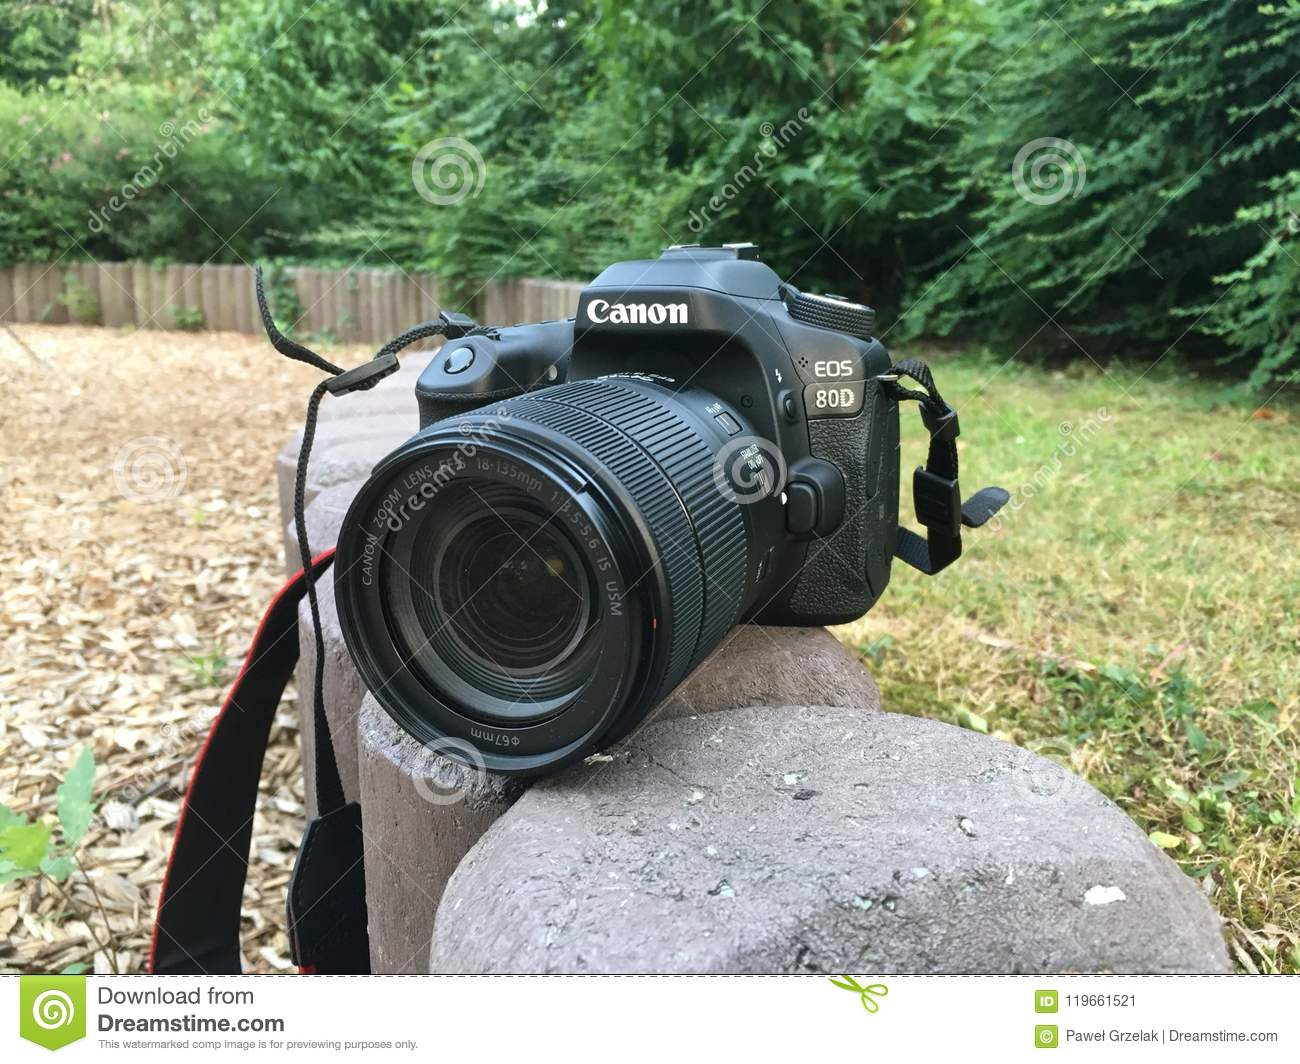 Canon 80d in nature editorial photo  Image of nature - 119661521